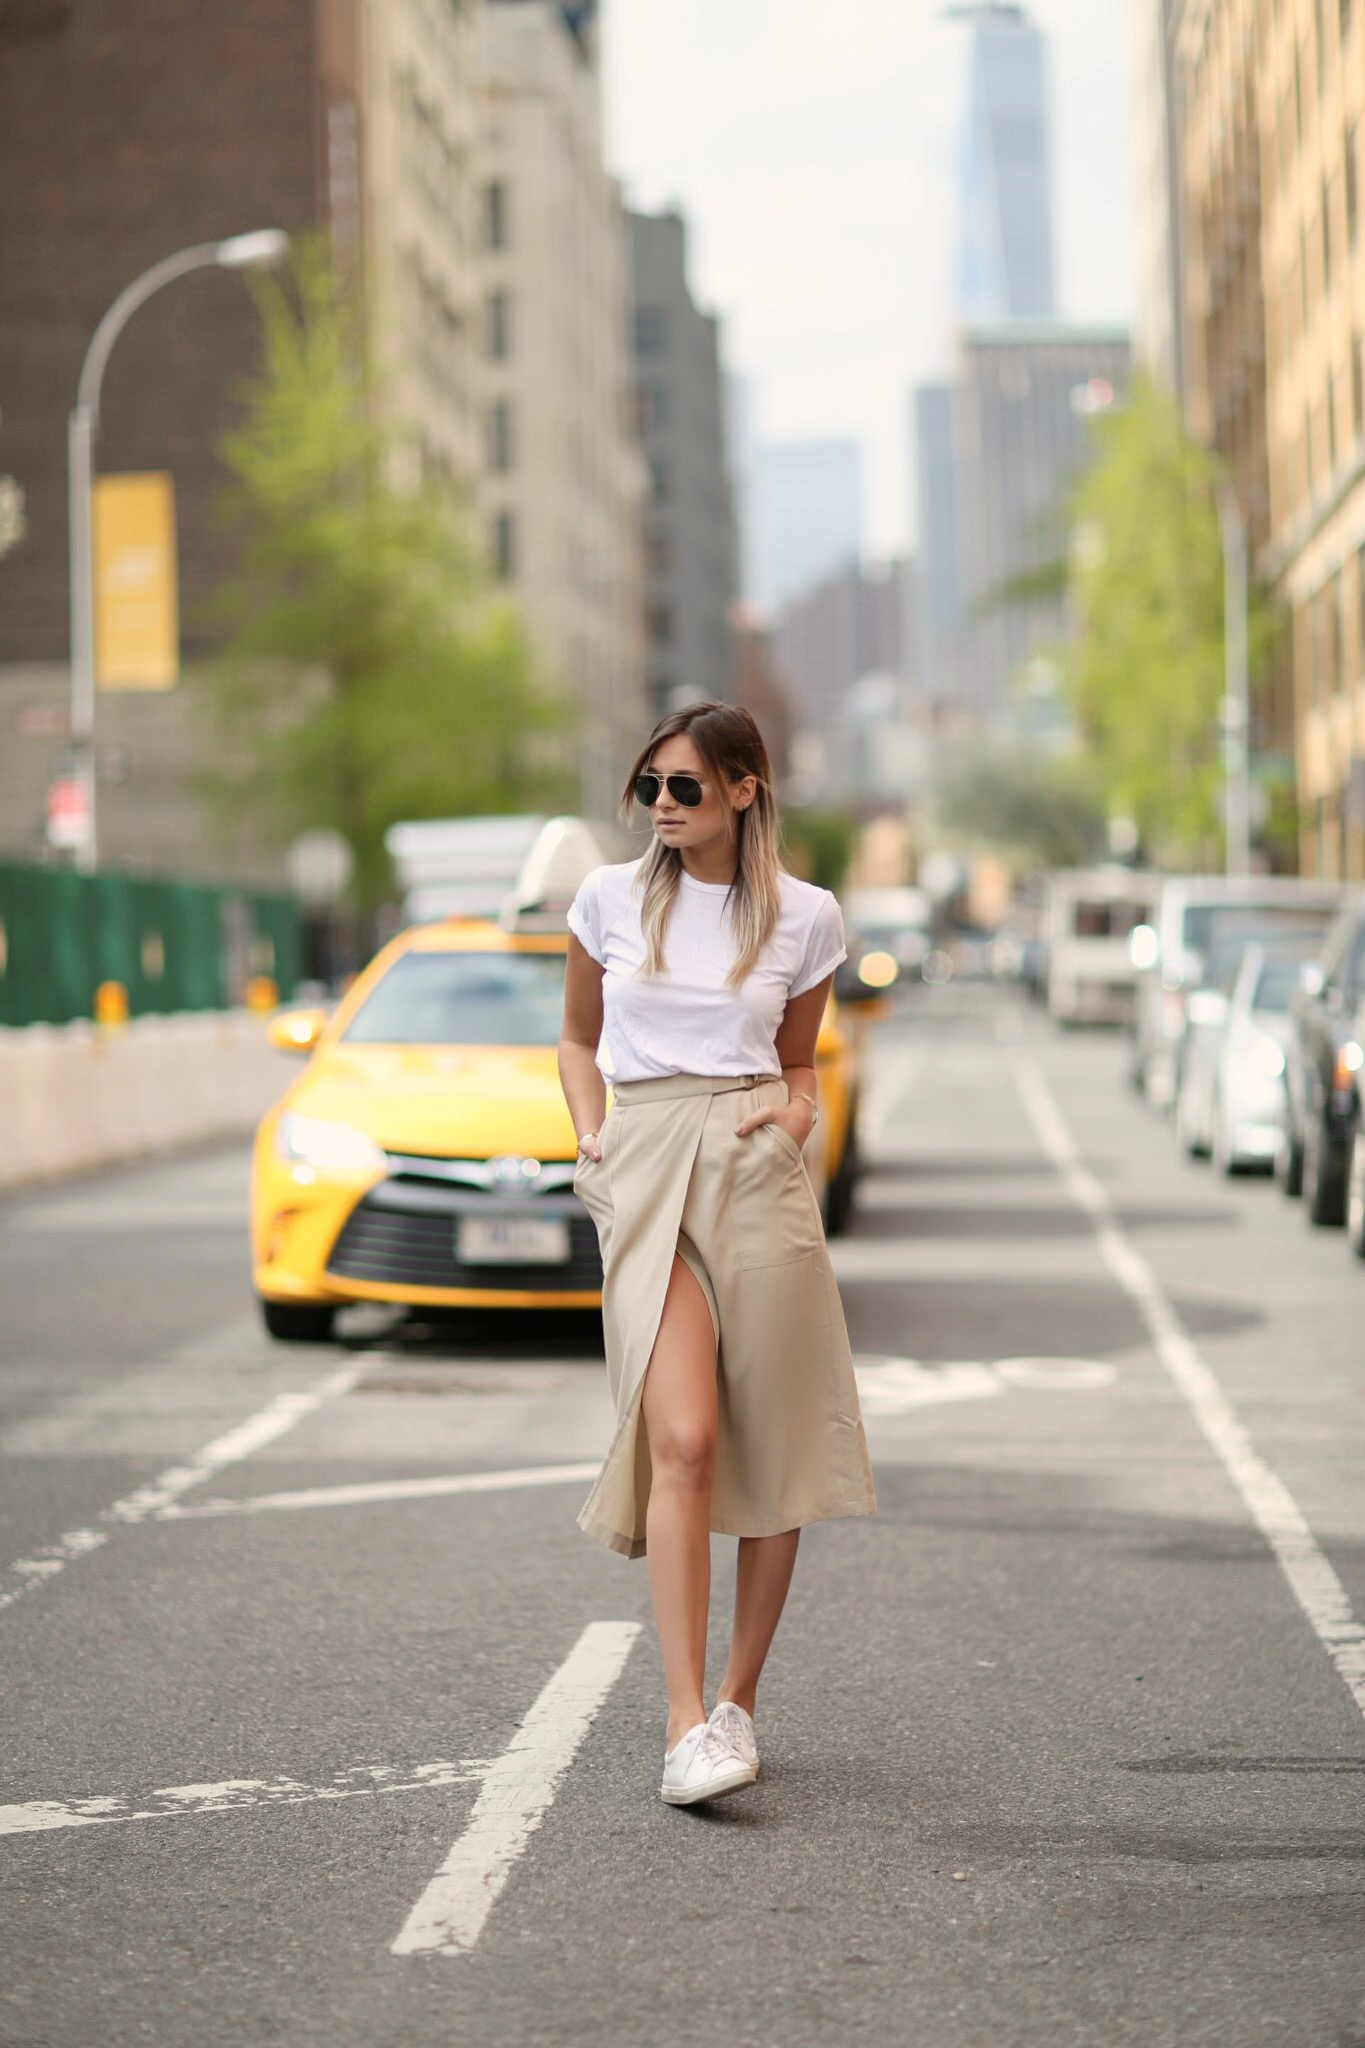 Skirts With A High Slit: Danielle Bernstein is wearing a midi beige Warehouse skirt